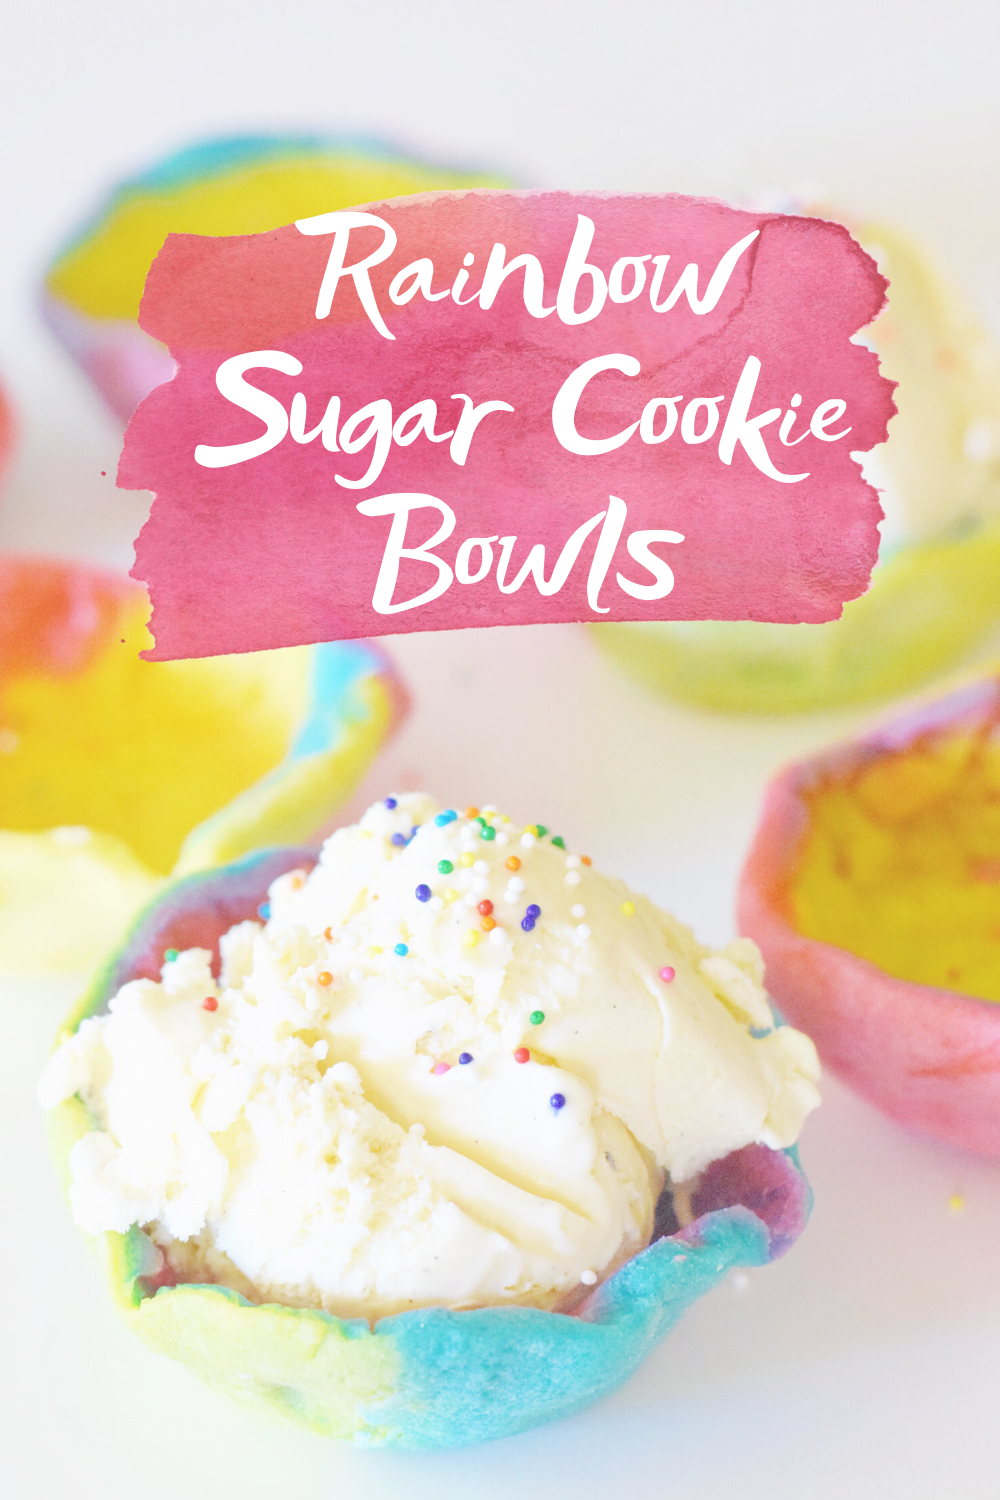 Rainbow Sugar Cookie Bowls - Rainbow Recipe - Cookie Dough Bowls - Easy Recipe For Kids - Dessert Ideas - Unicorn Party - Rainbow Dessert - Unicorn Dessert - Rainbow Foods